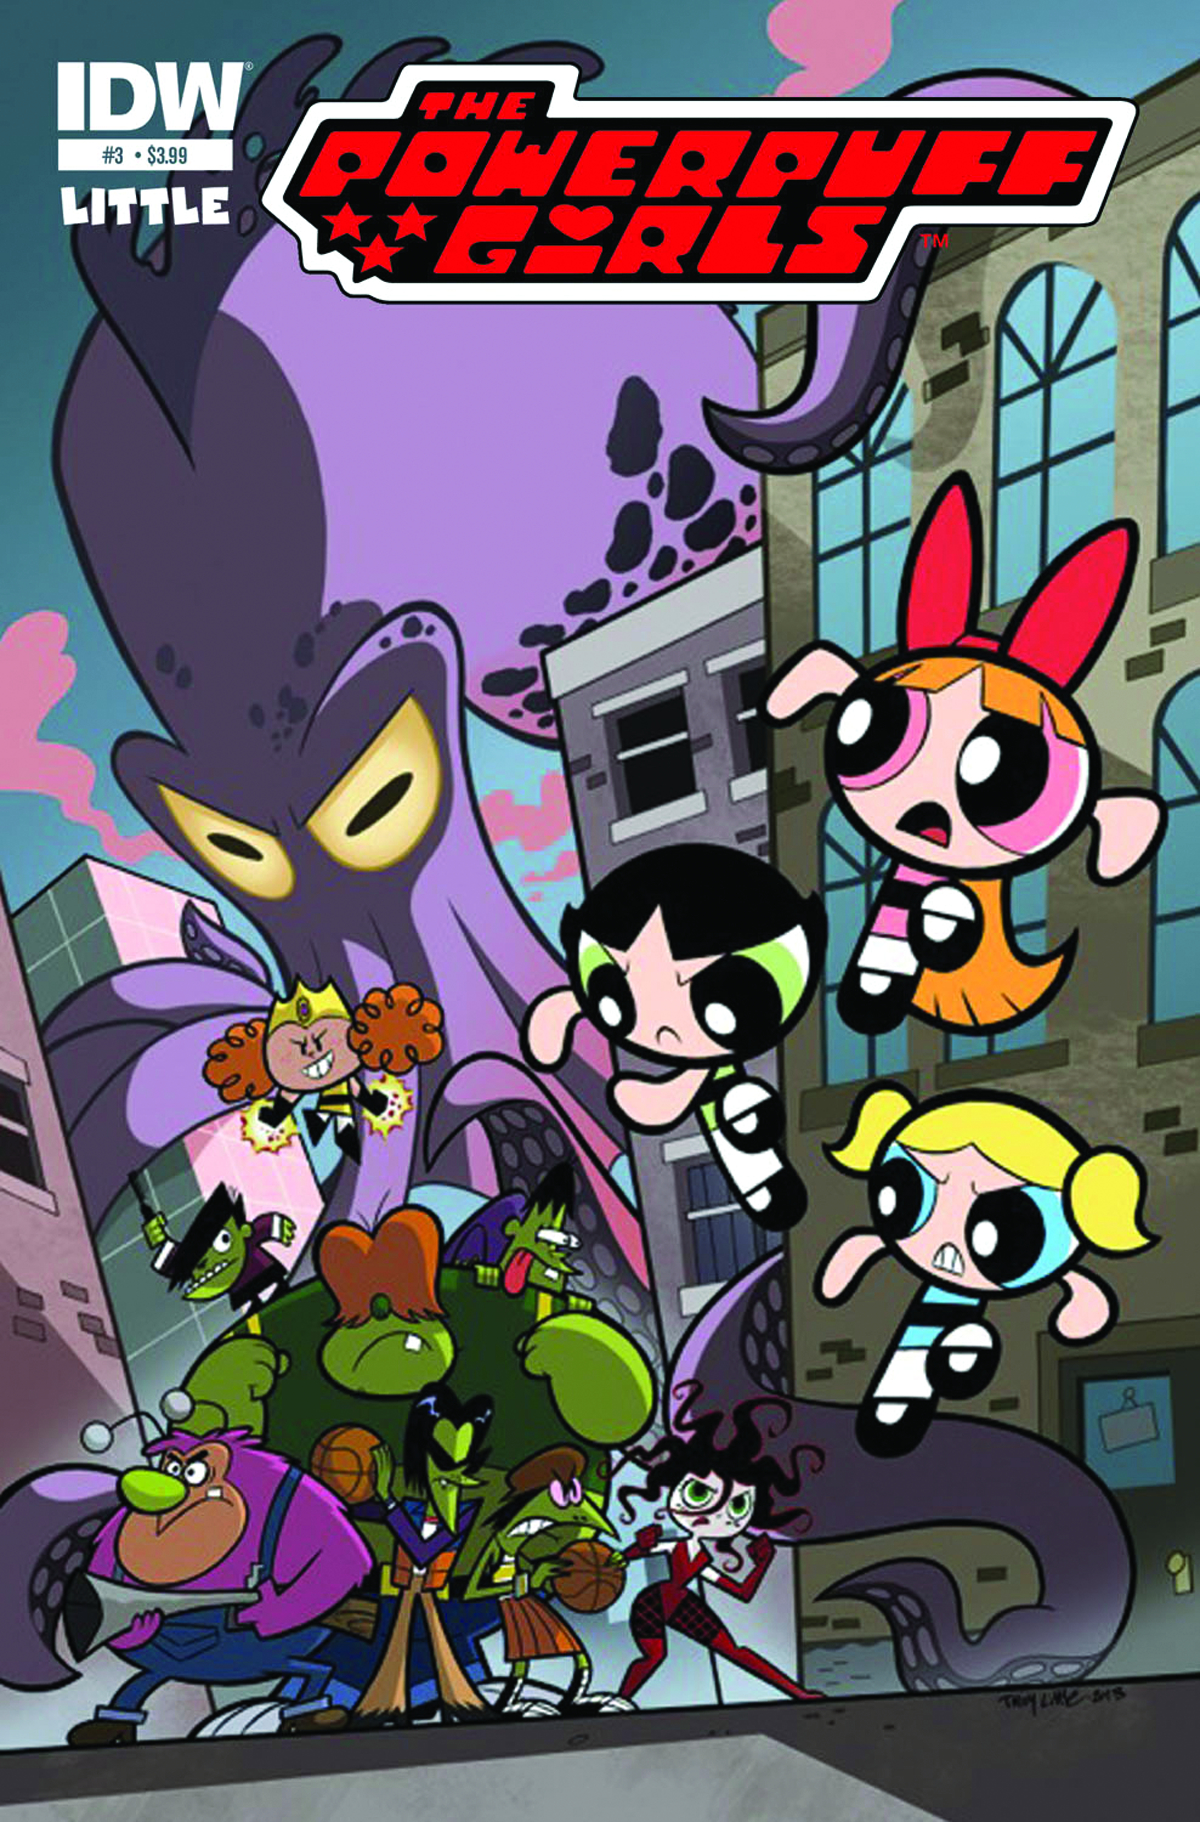 POWERPUFF GIRLS #3